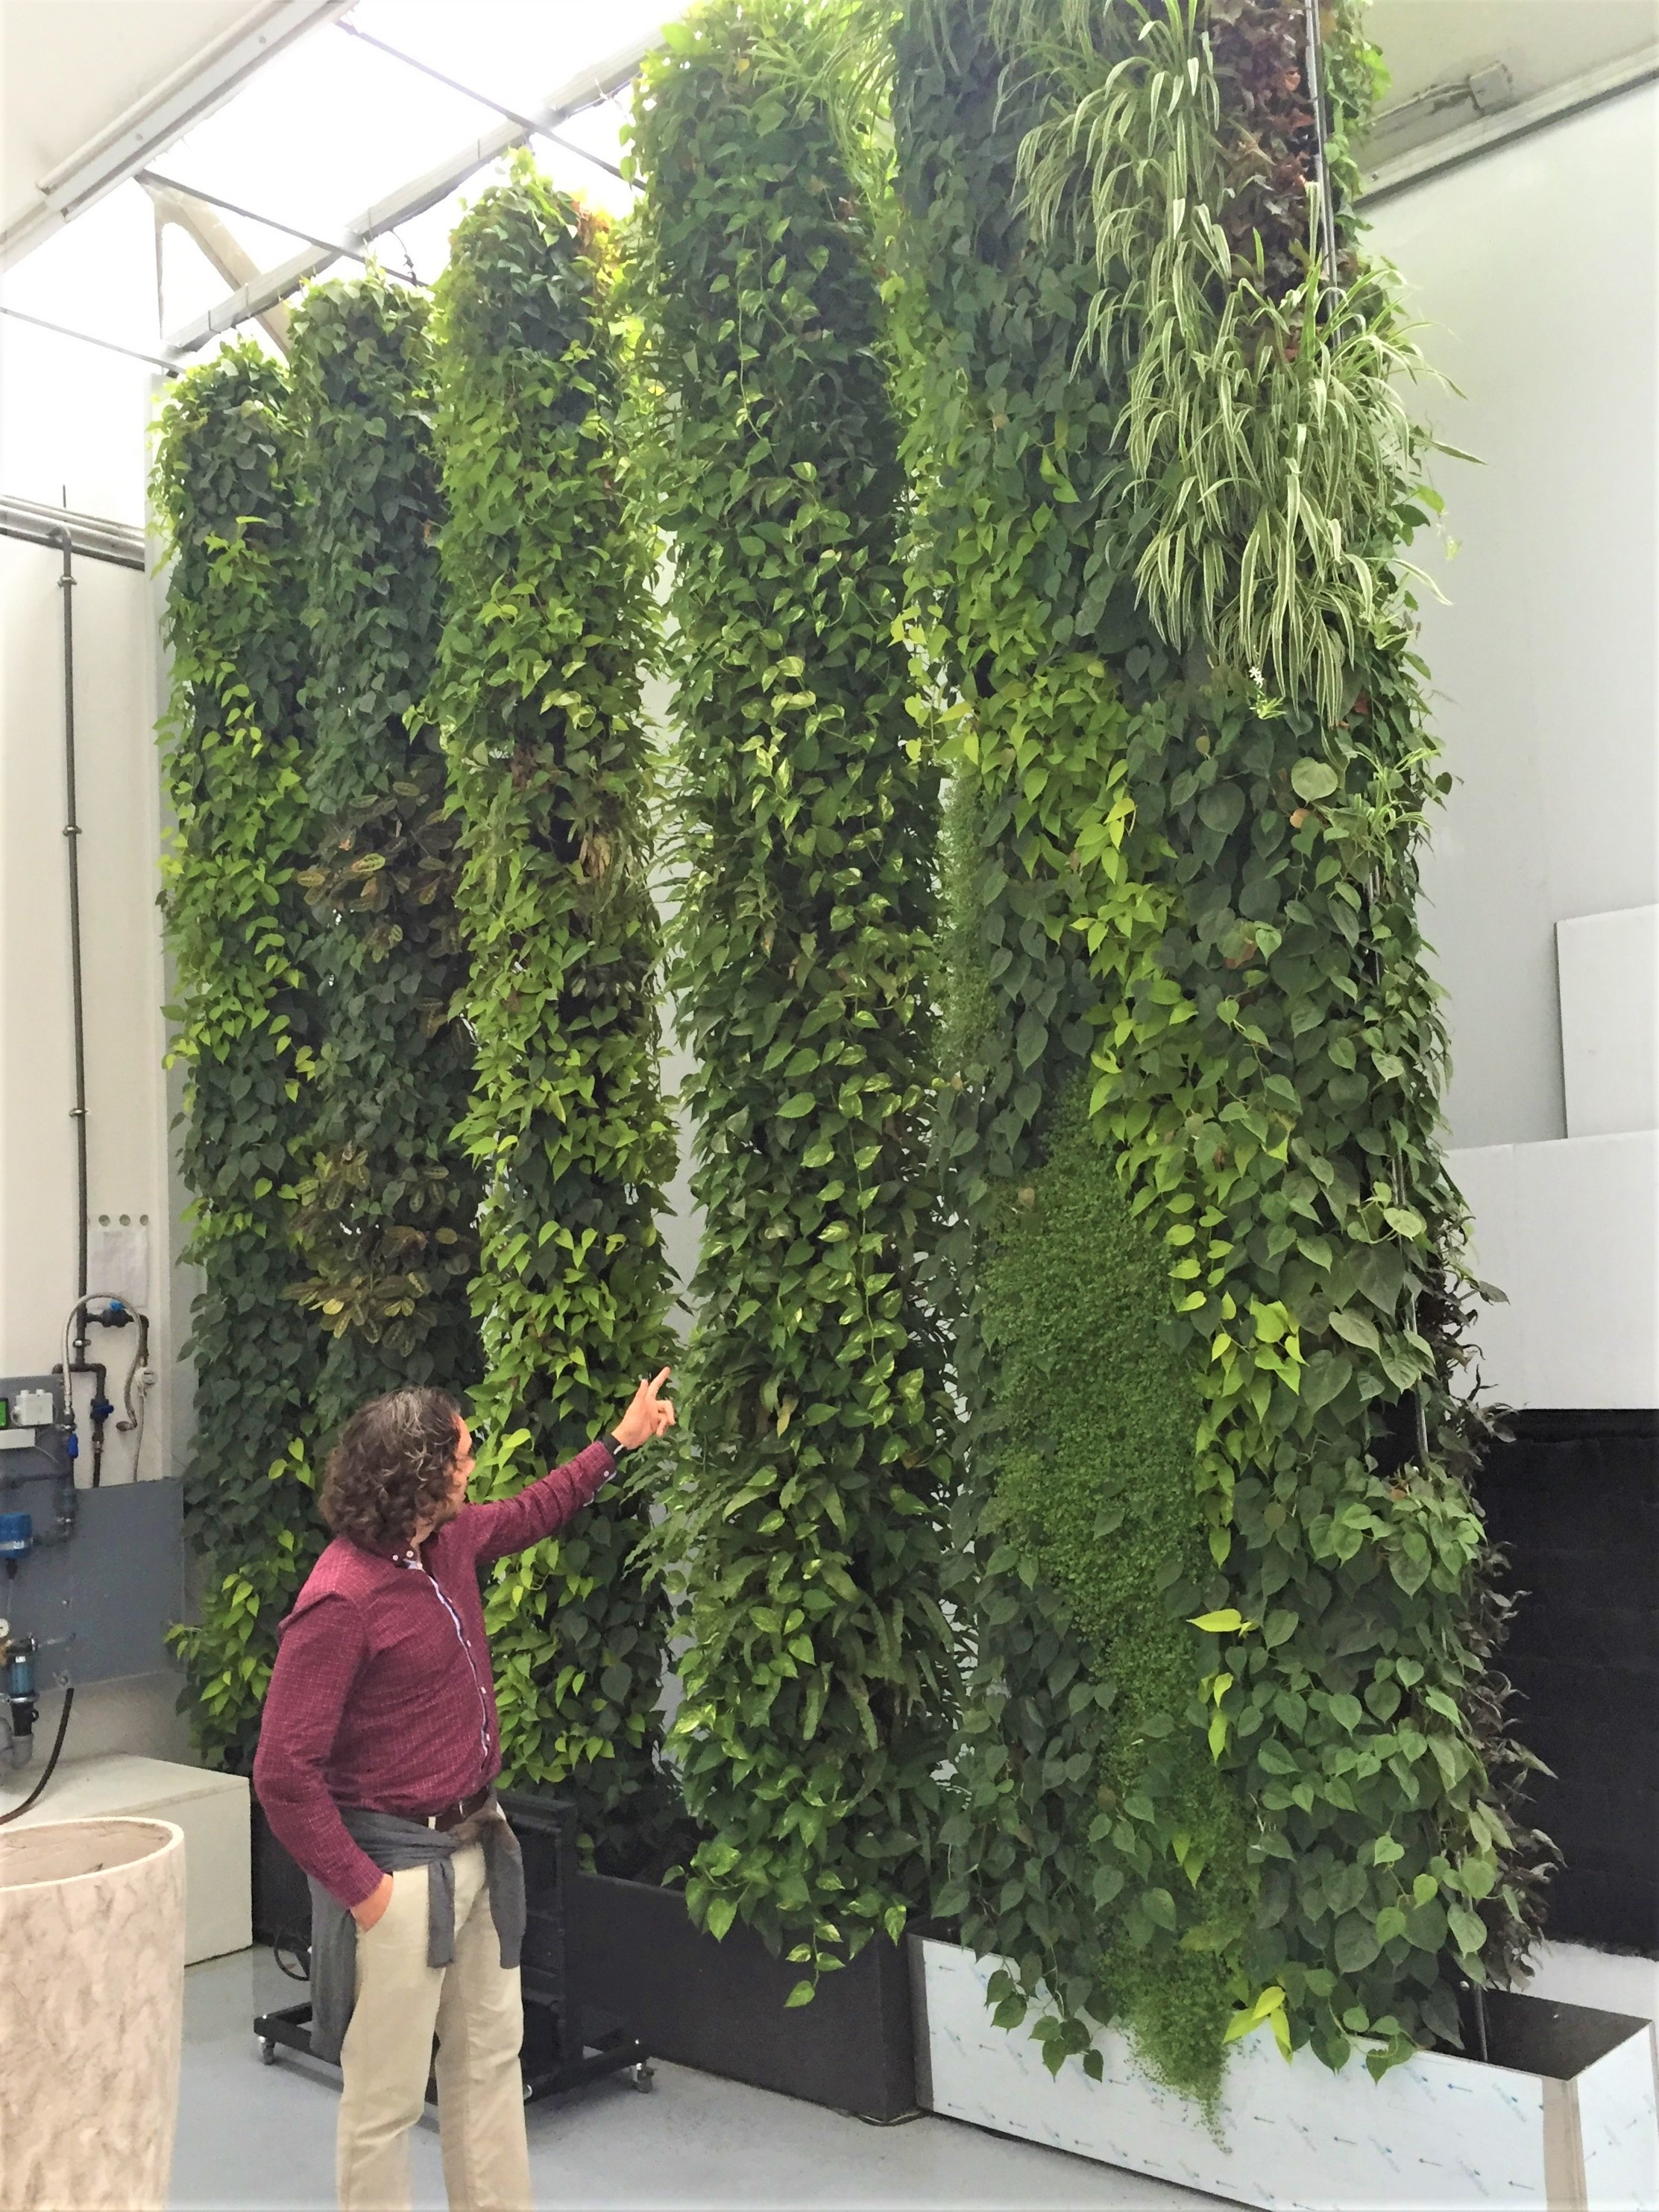 Living Wall Fytotextile Flexible System